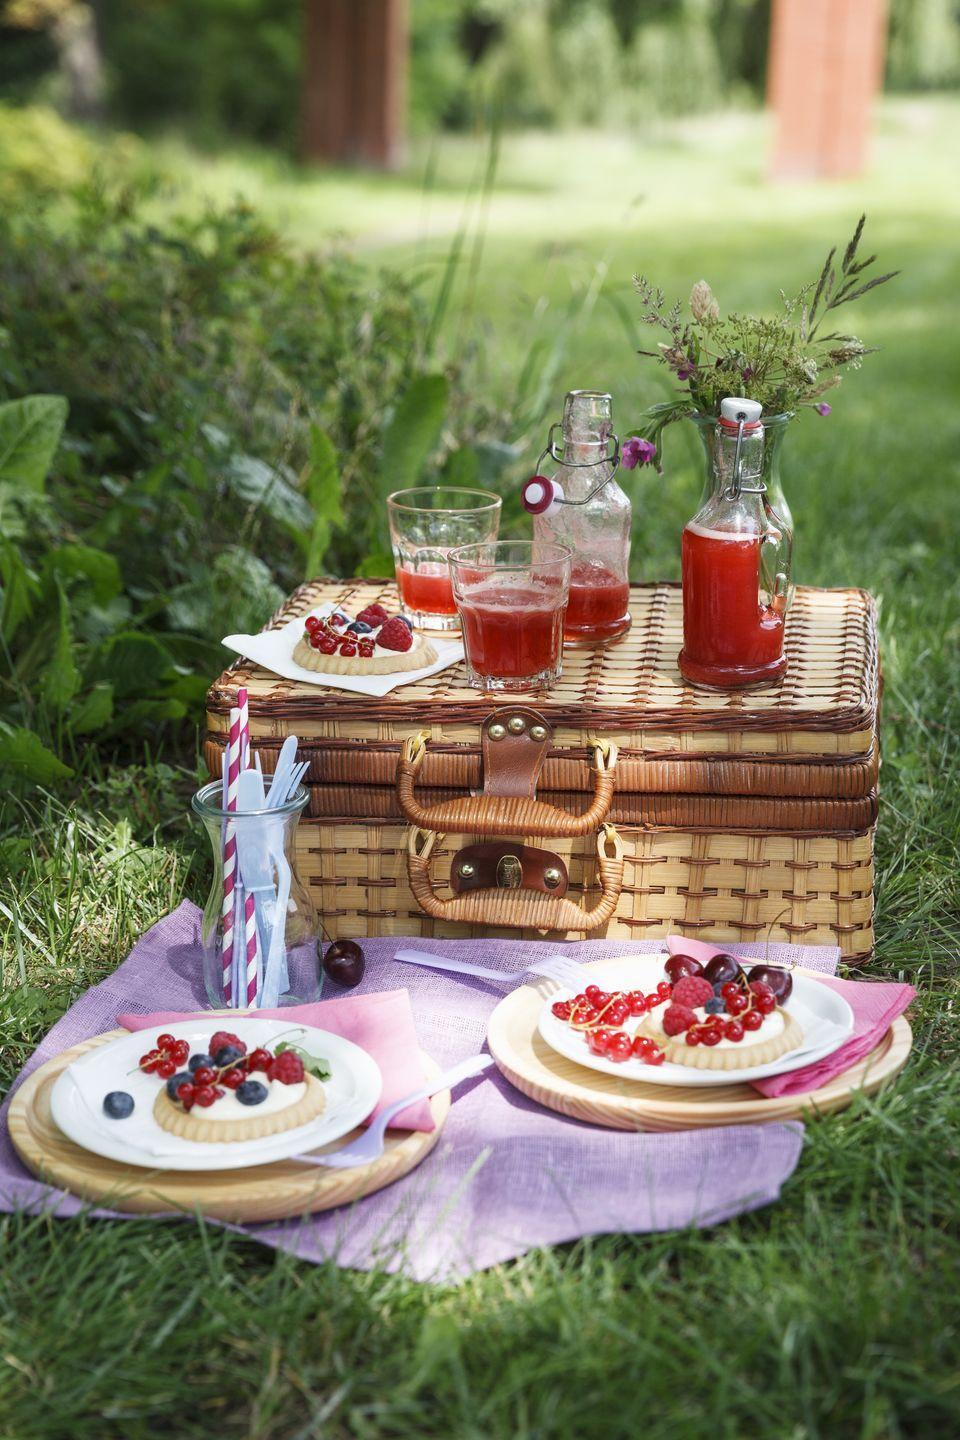 """<p>It's obvious that spending the 4th of July outdoors is ideal, so why not bring food and drinks right to your backyard? You'll appreciate the sunshine and get a good meal in, too.</p><p><a class=""""link rapid-noclick-resp"""" href=""""https://www.amazon.com/Picnic-Piccadilly-Glasses-Cutlery-Corkscrew/dp/B0034A4NYW?tag=syn-yahoo-20&ascsubtag=%5Bartid%7C10055.g.21749867%5Bsrc%7Cyahoo-us"""" rel=""""nofollow noopener"""" target=""""_blank"""" data-ylk=""""slk:SHOP PICNIC BASKETS"""">SHOP PICNIC BASKETS</a> </p>"""